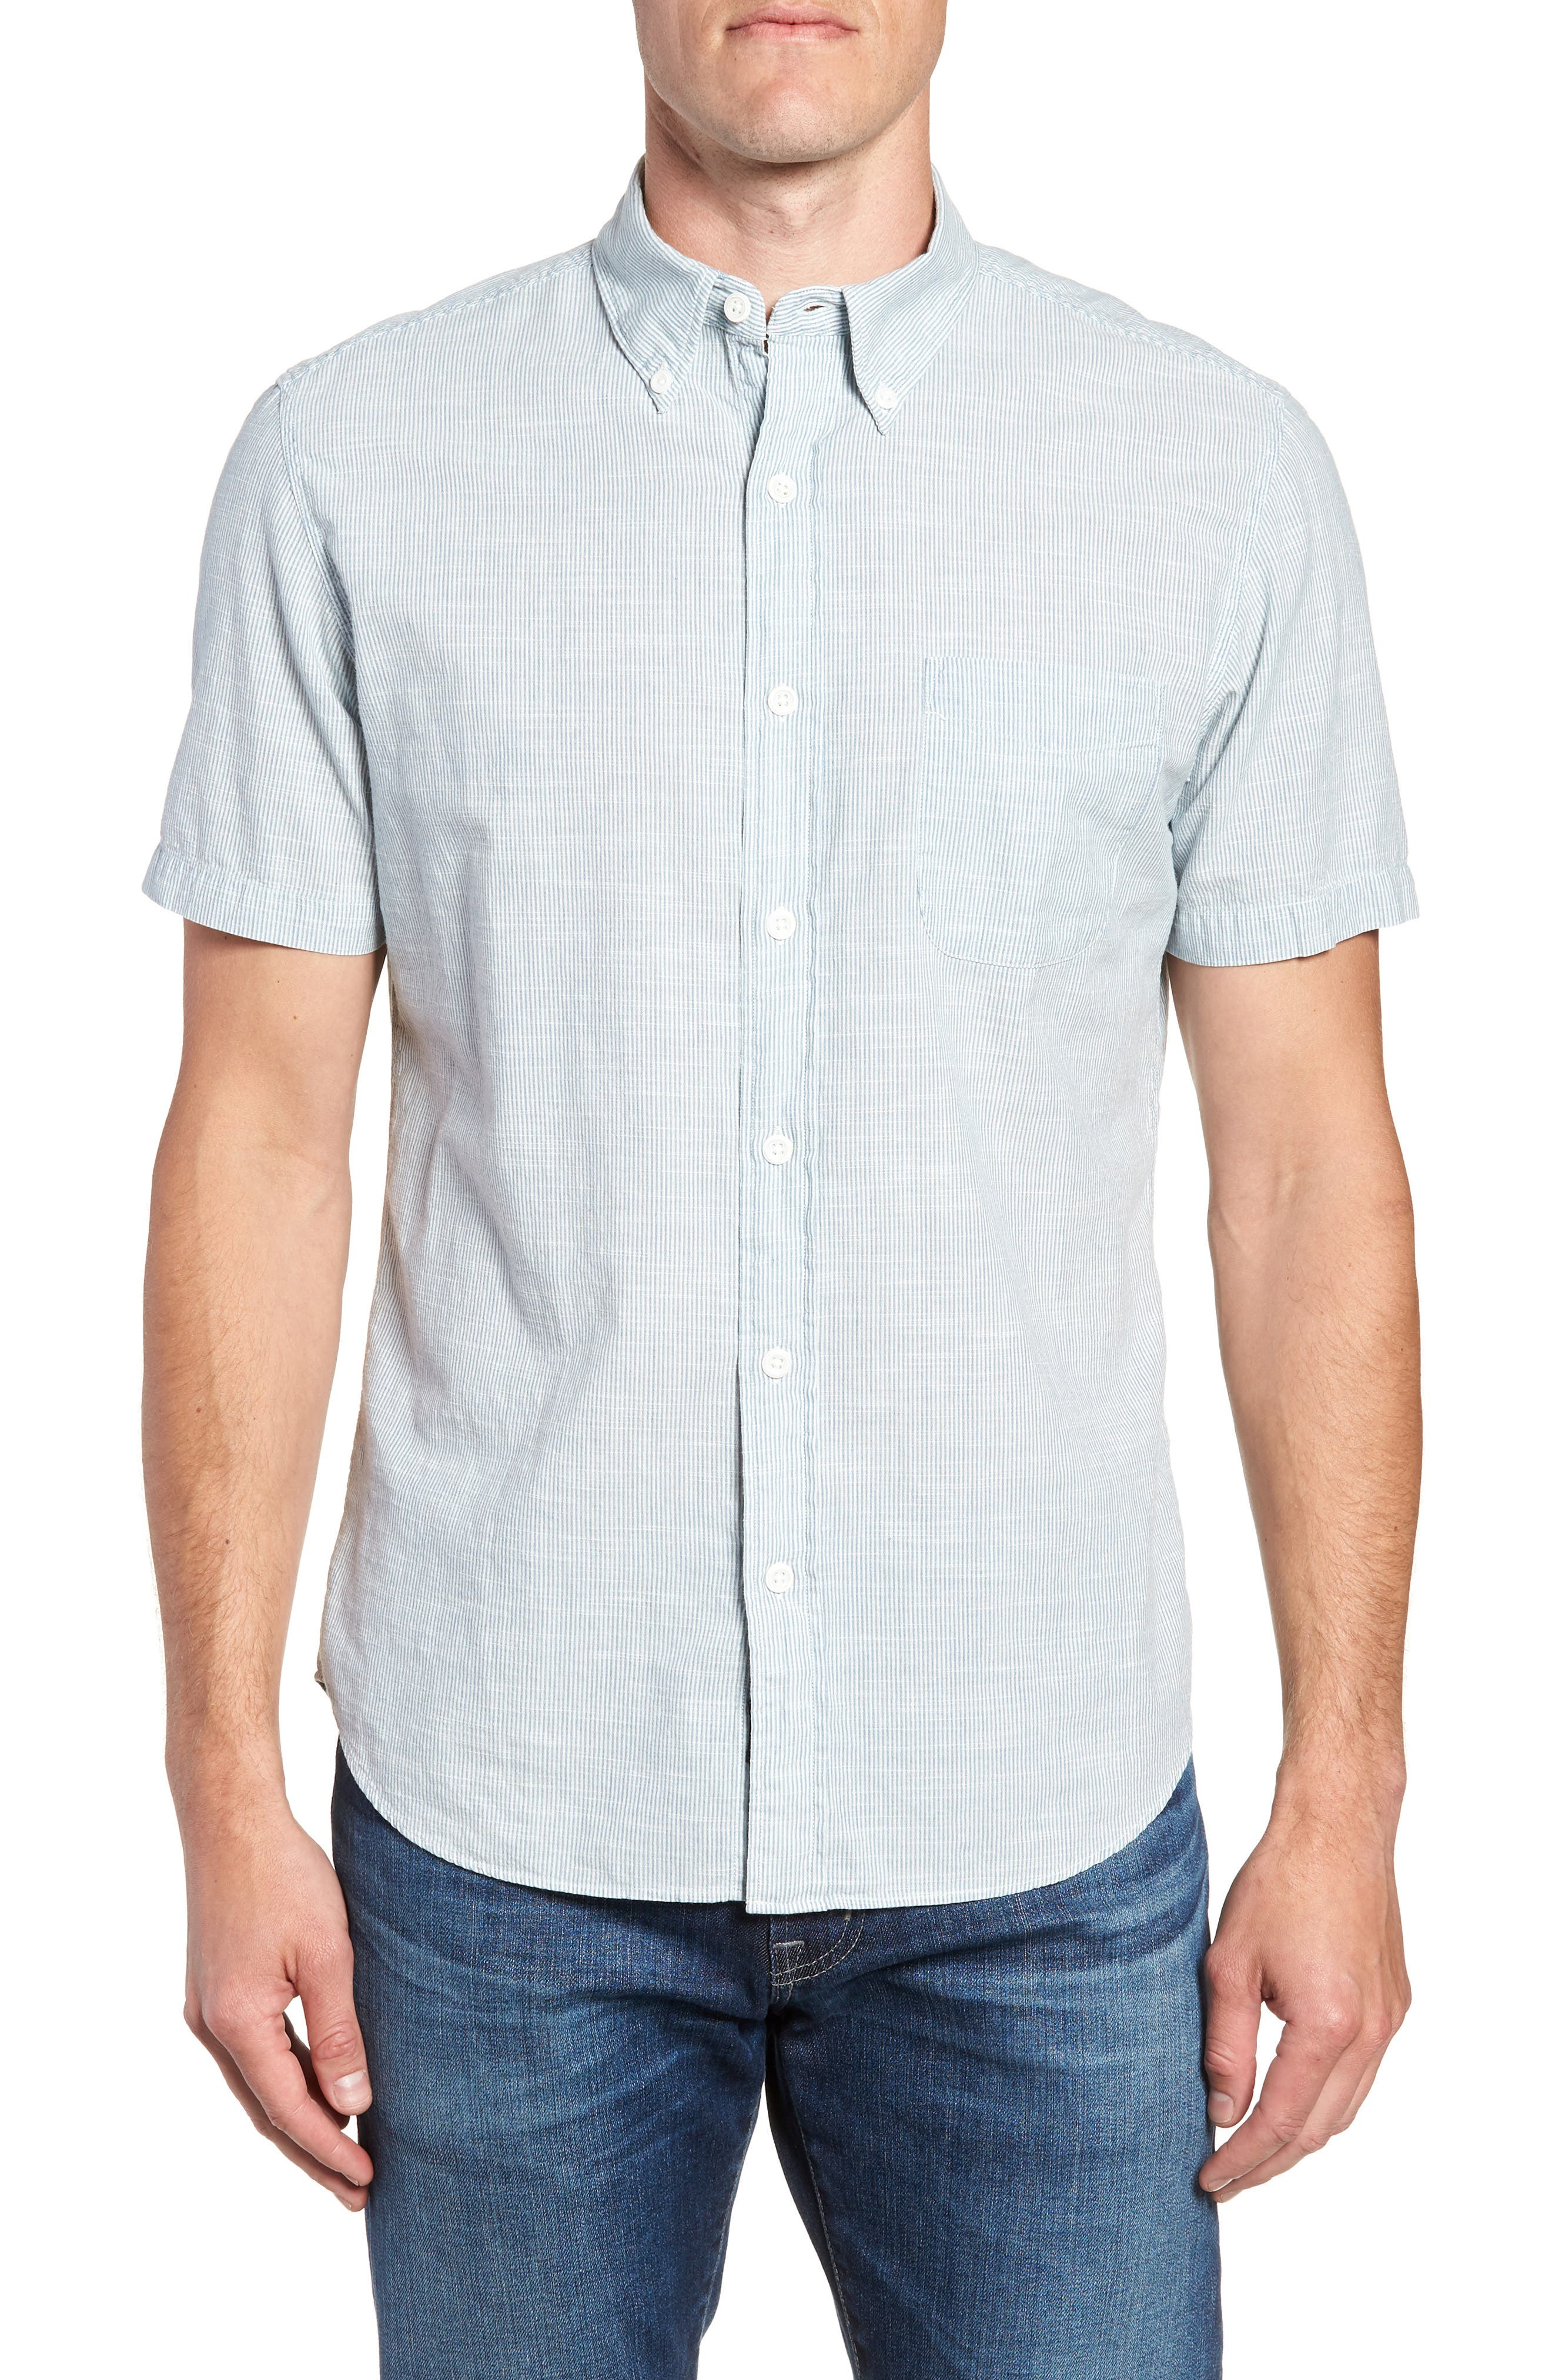 Pacific Pinstripe Sport Shirt,                         Main,                         color, 100